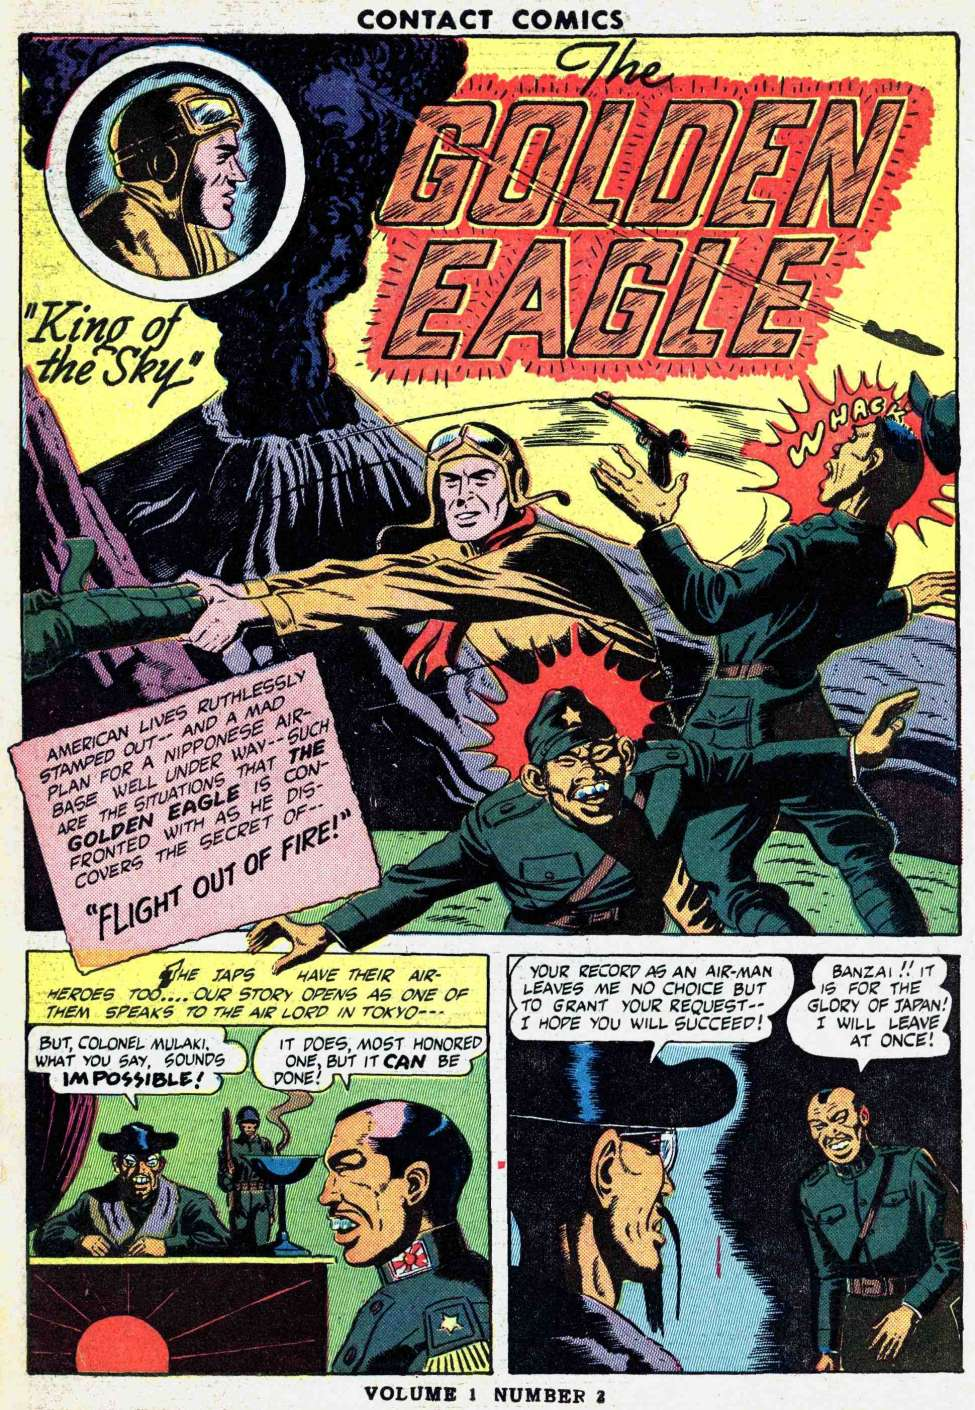 Comic Book Cover For Golden Eagle Archive (Contact Comics)